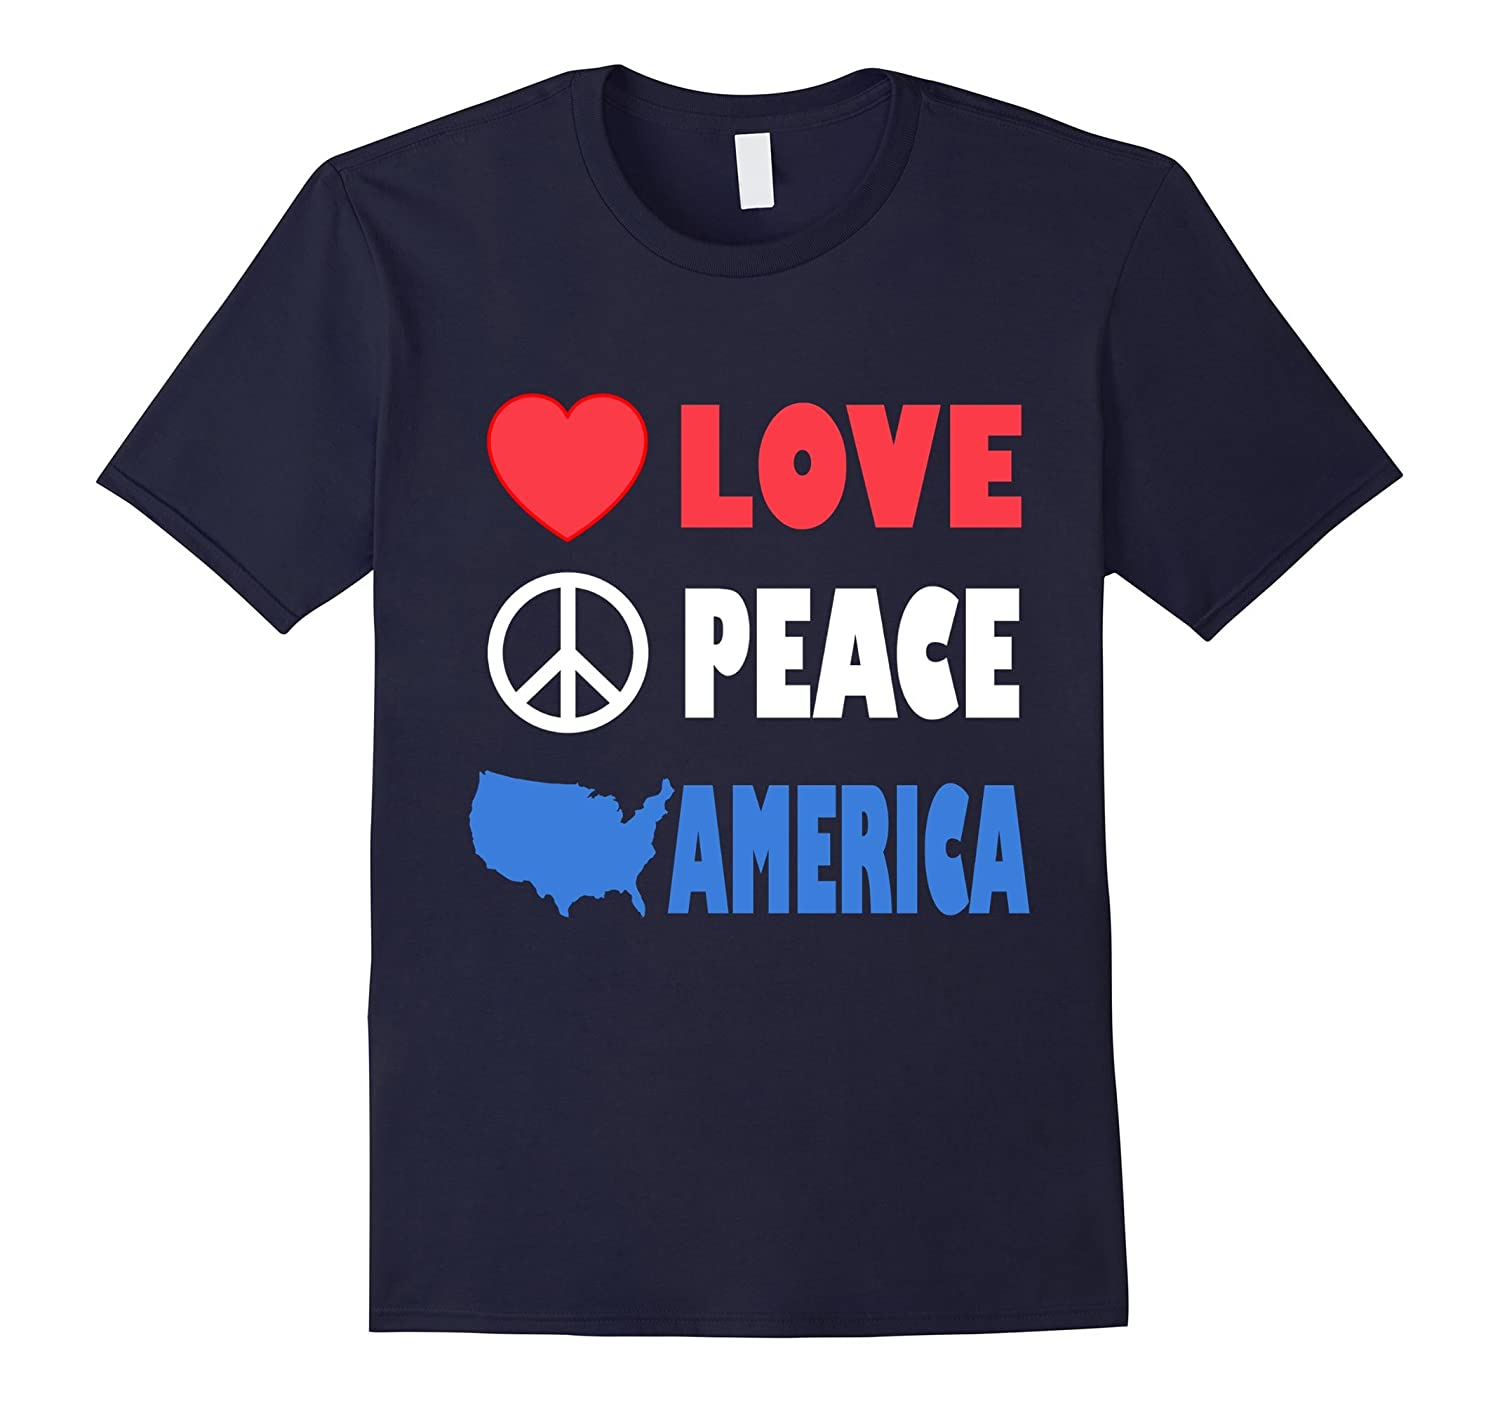 Love Peace America - Patriotic Red White  Blue T-Shirt-Vaci